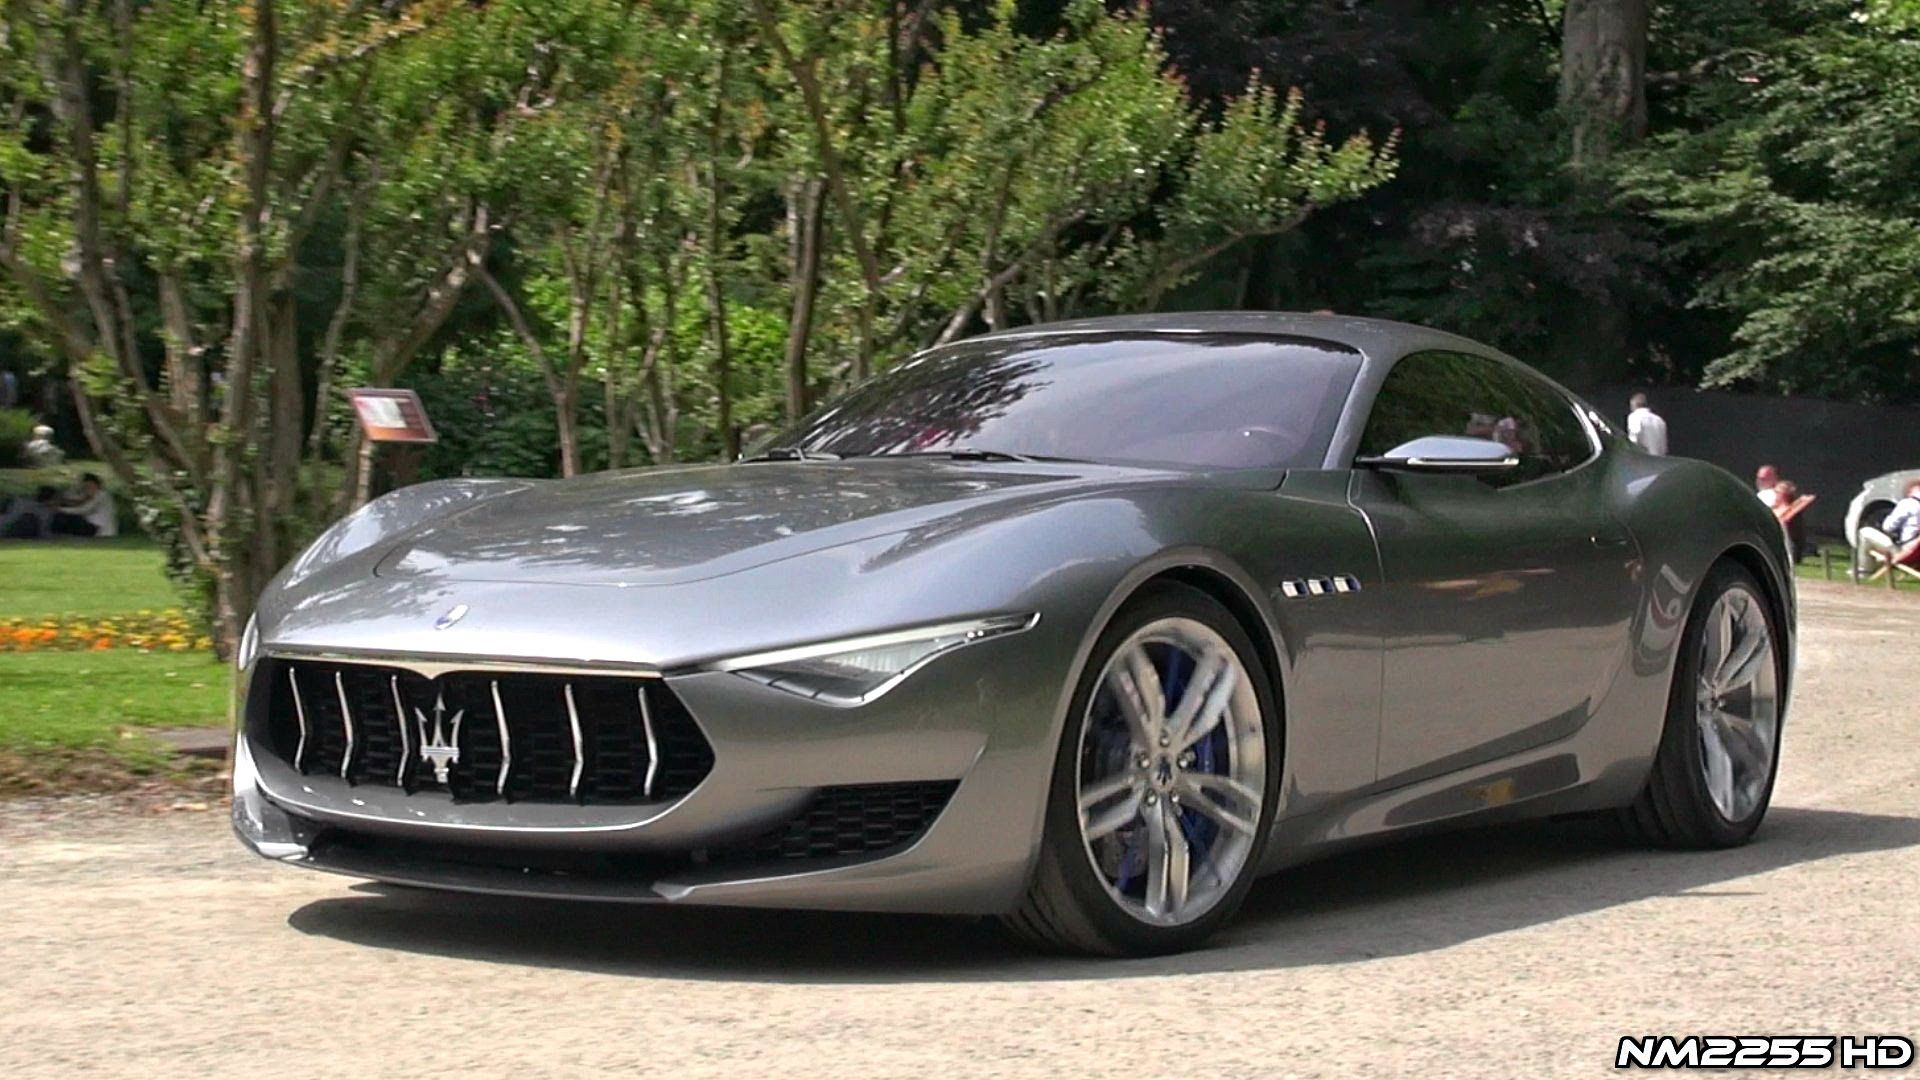 That matches with earlier rumors suggesting that Maserati